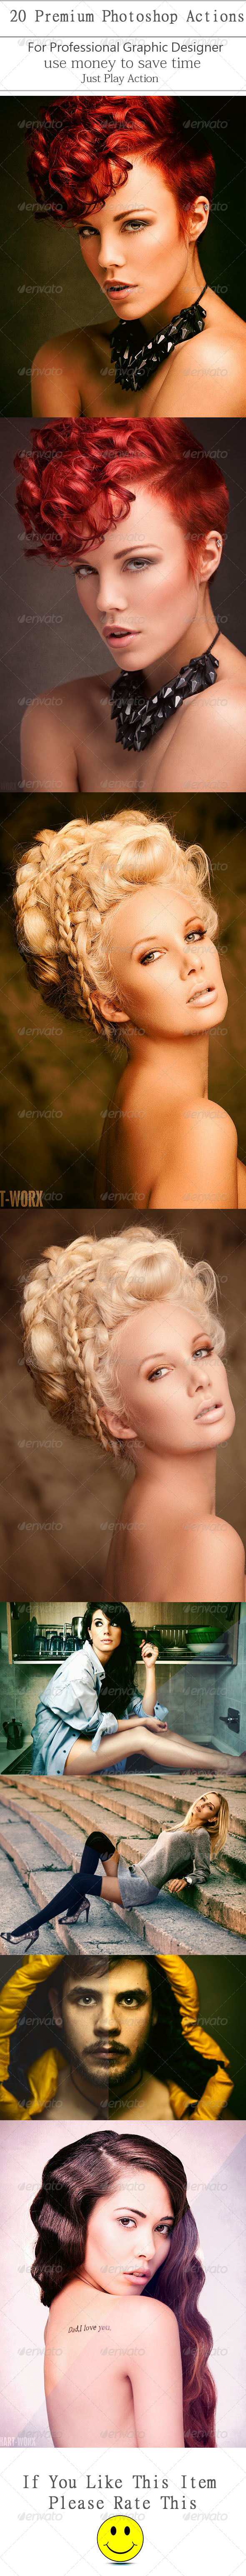 GraphicRiver 20 Premium Photoshop Actions 8756308